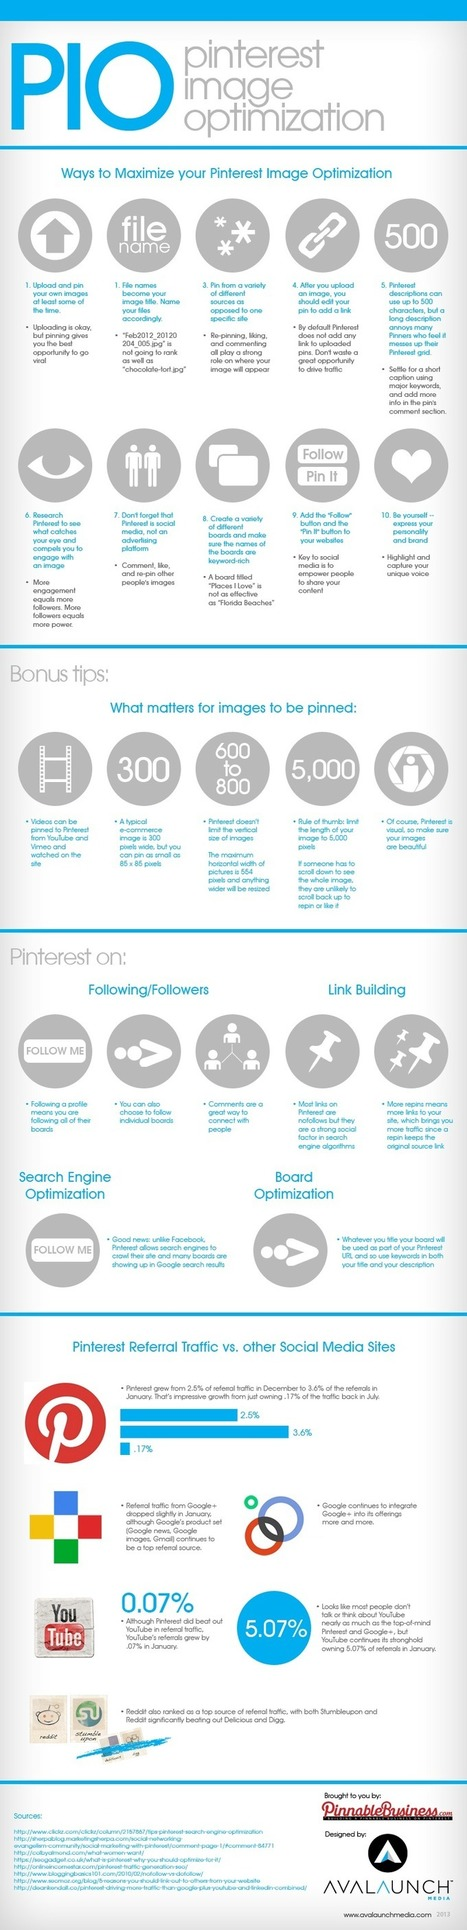 Optimizing Pinterest Images For Business Success - Timothy Carter | Social Media Marketing Info | Scoop.it